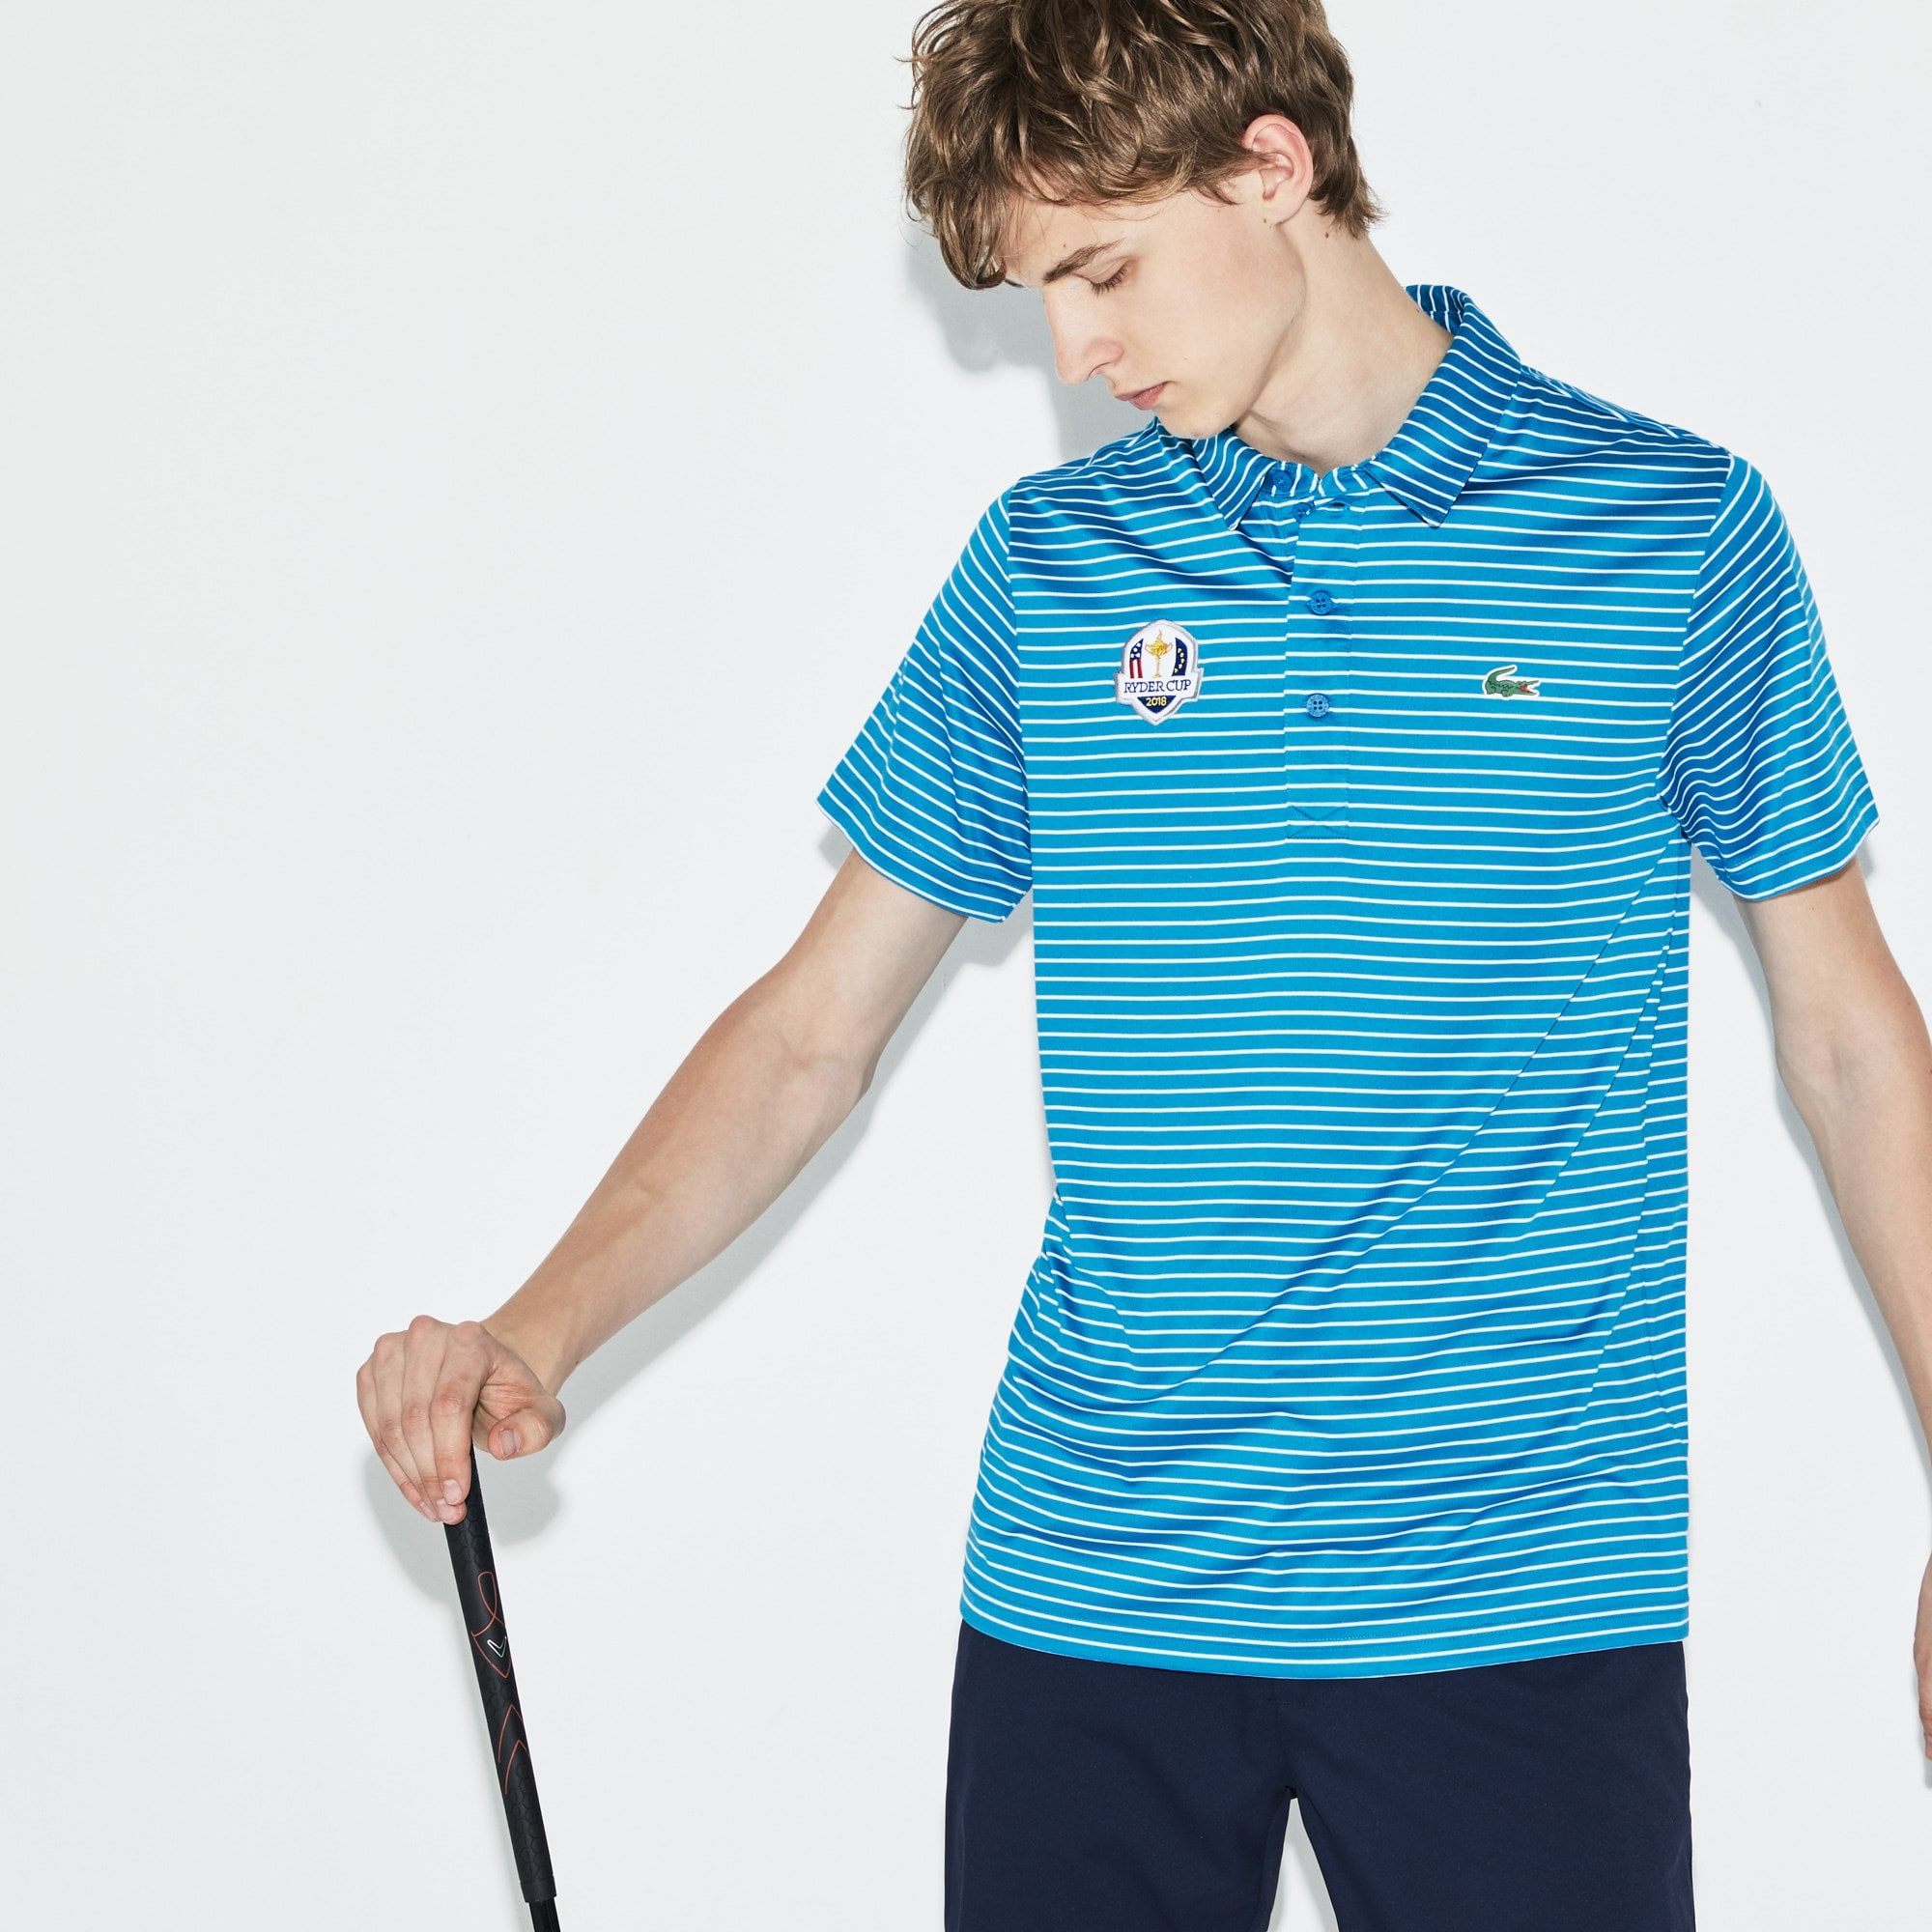 Lacoste - Herren LACOSTE SPORT Ryder Cup Edition gestreiftes Poloshirt - 1